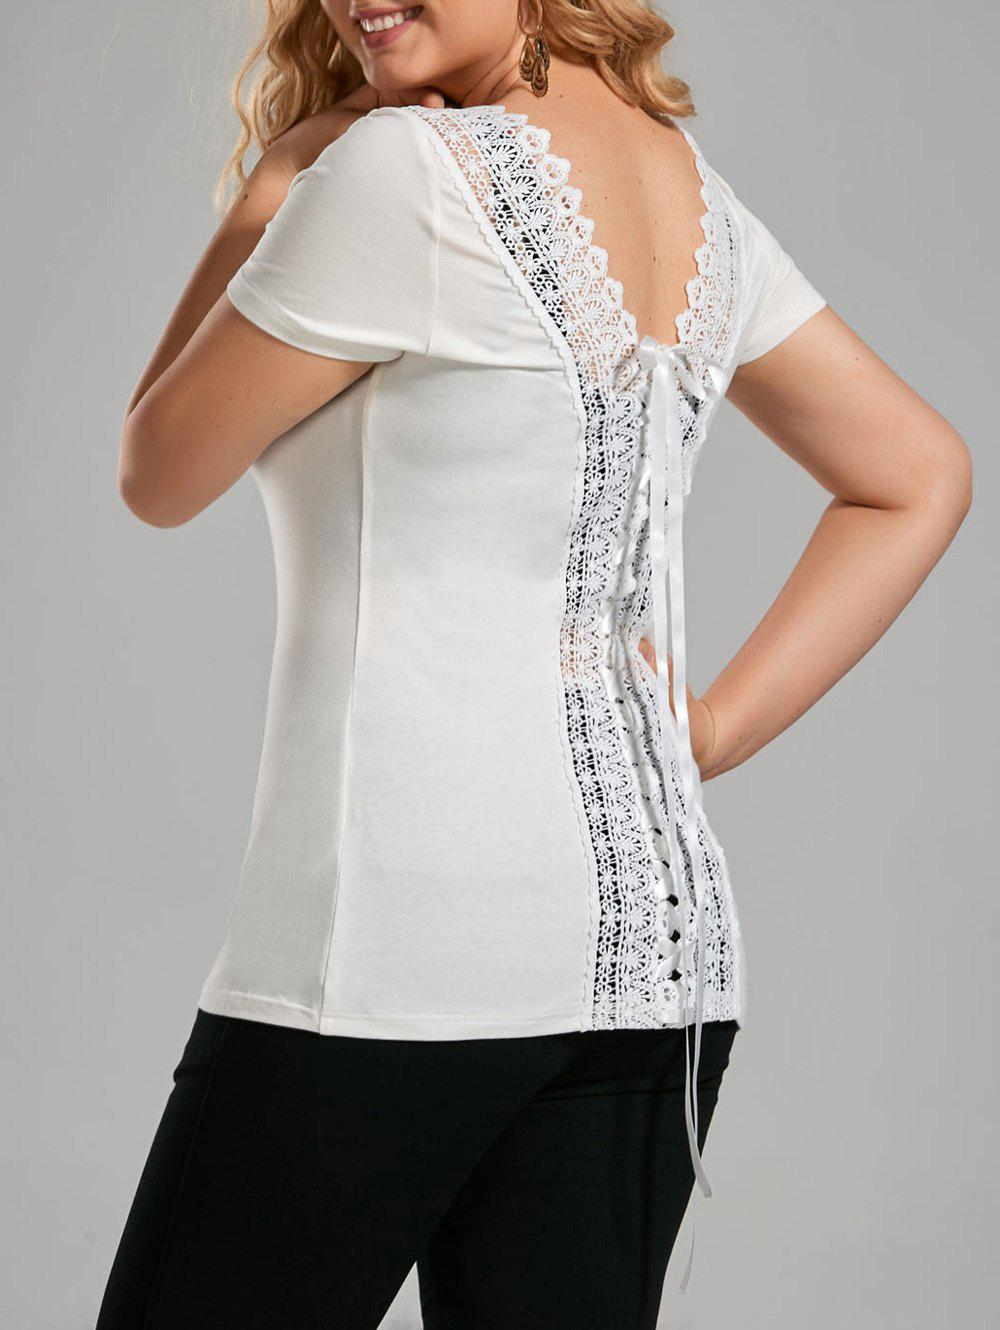 Plus Size Lace Up Open Back TopWOMEN<br><br>Size: 5XL; Color: OFF-WHITE; Material: Rayon,Spandex; Shirt Length: Long; Sleeve Length: Short; Collar: Scoop Neck; Style: Fashion; Season: Summer; Embellishment: Lace; Pattern Type: Solid; Weight: 0.2400kg; Package Contents: 1 x T-shirt;